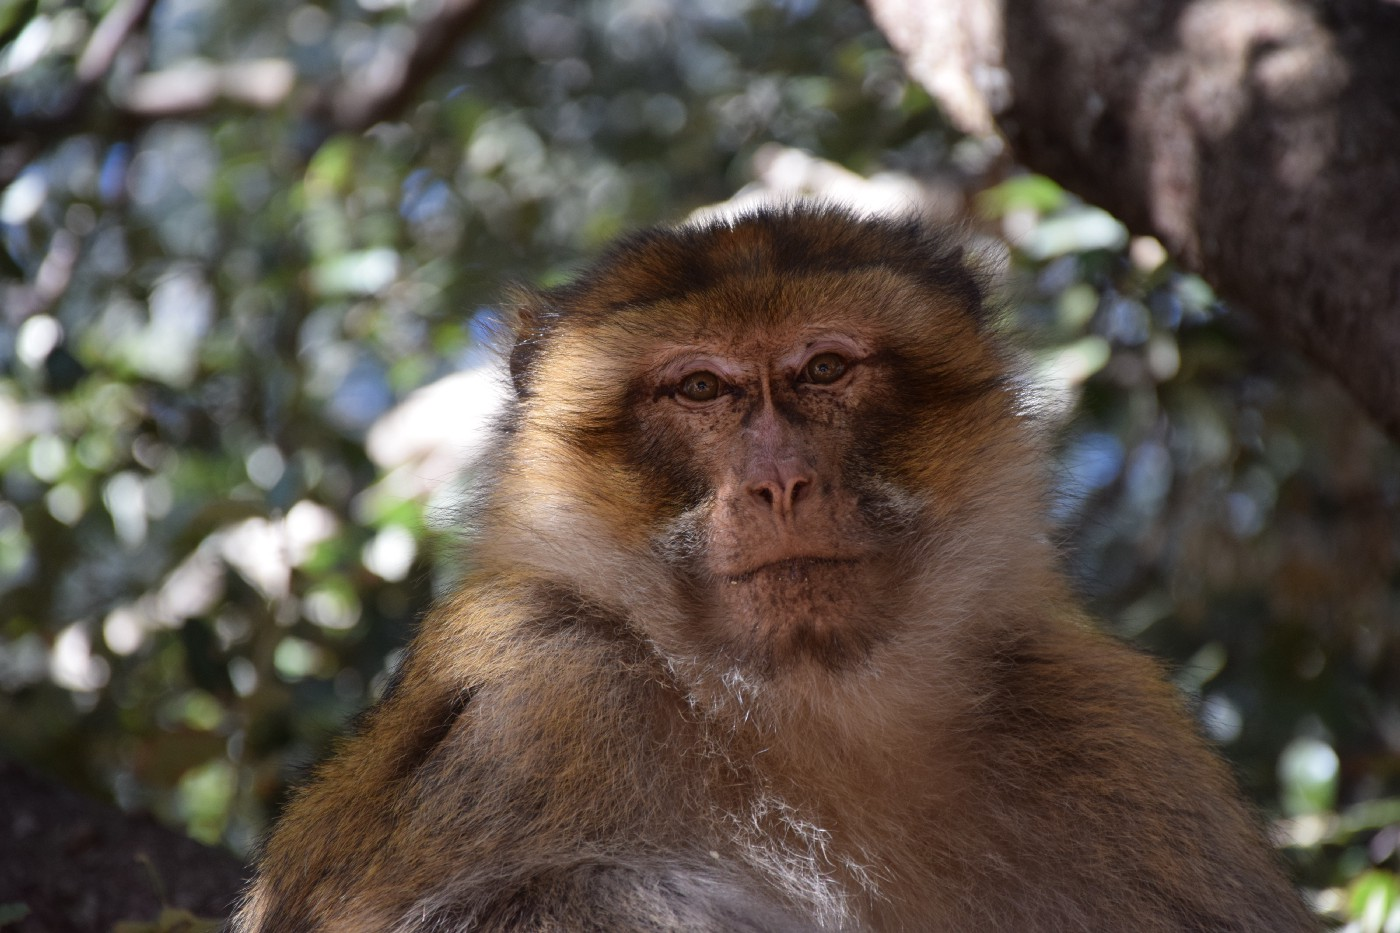 A macaque looking at the camera.